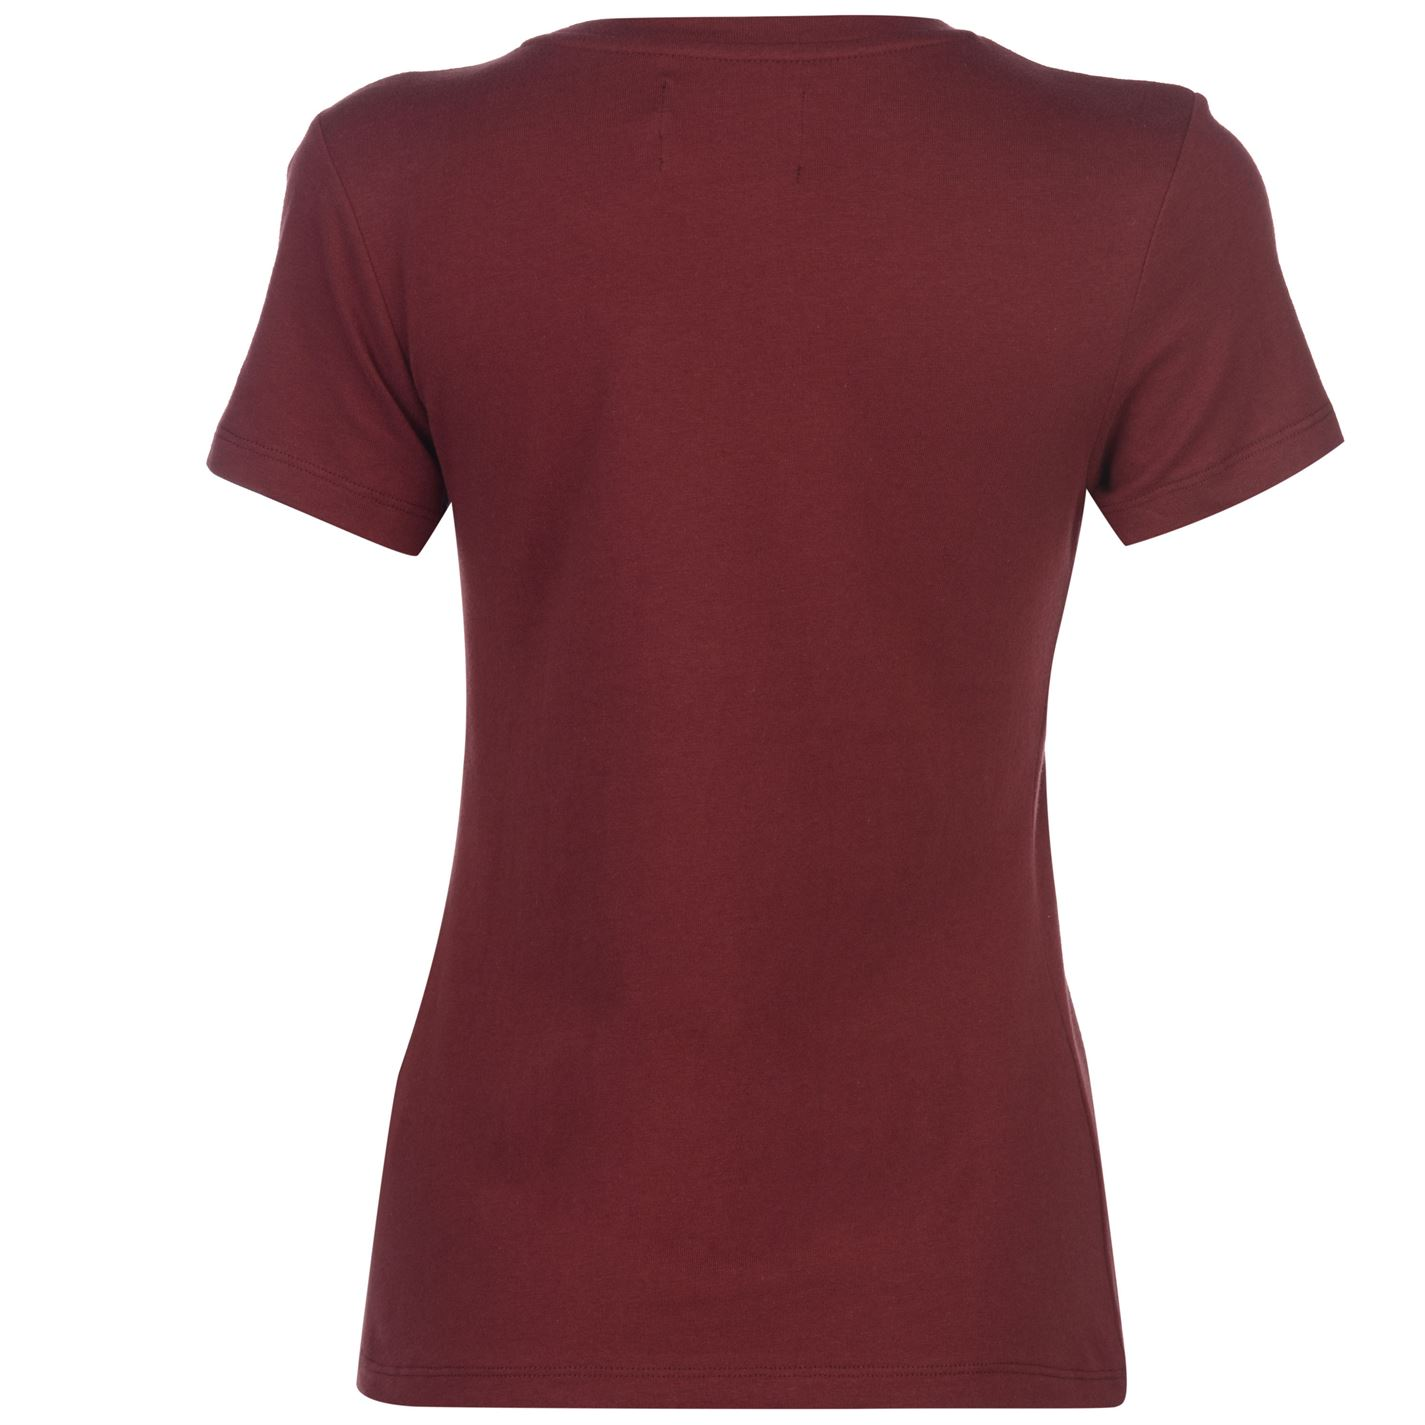 Womens-Calvin-Klein-Core-Slim-T-Shirt-Crew-Neck-Short-Sleeve-New thumbnail 14